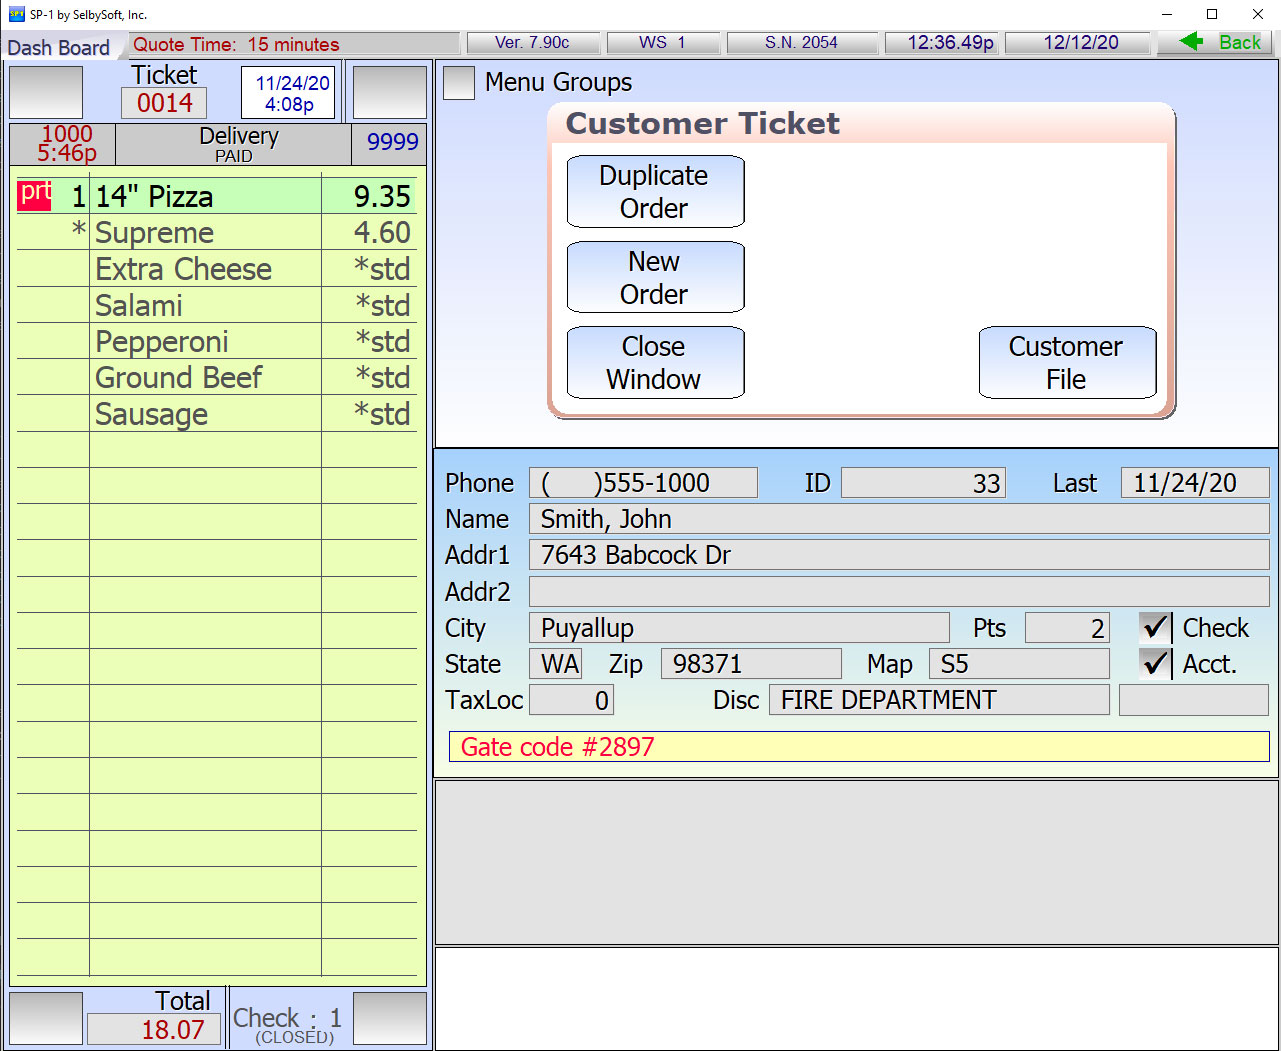 Customer screen with Pizza on ticket